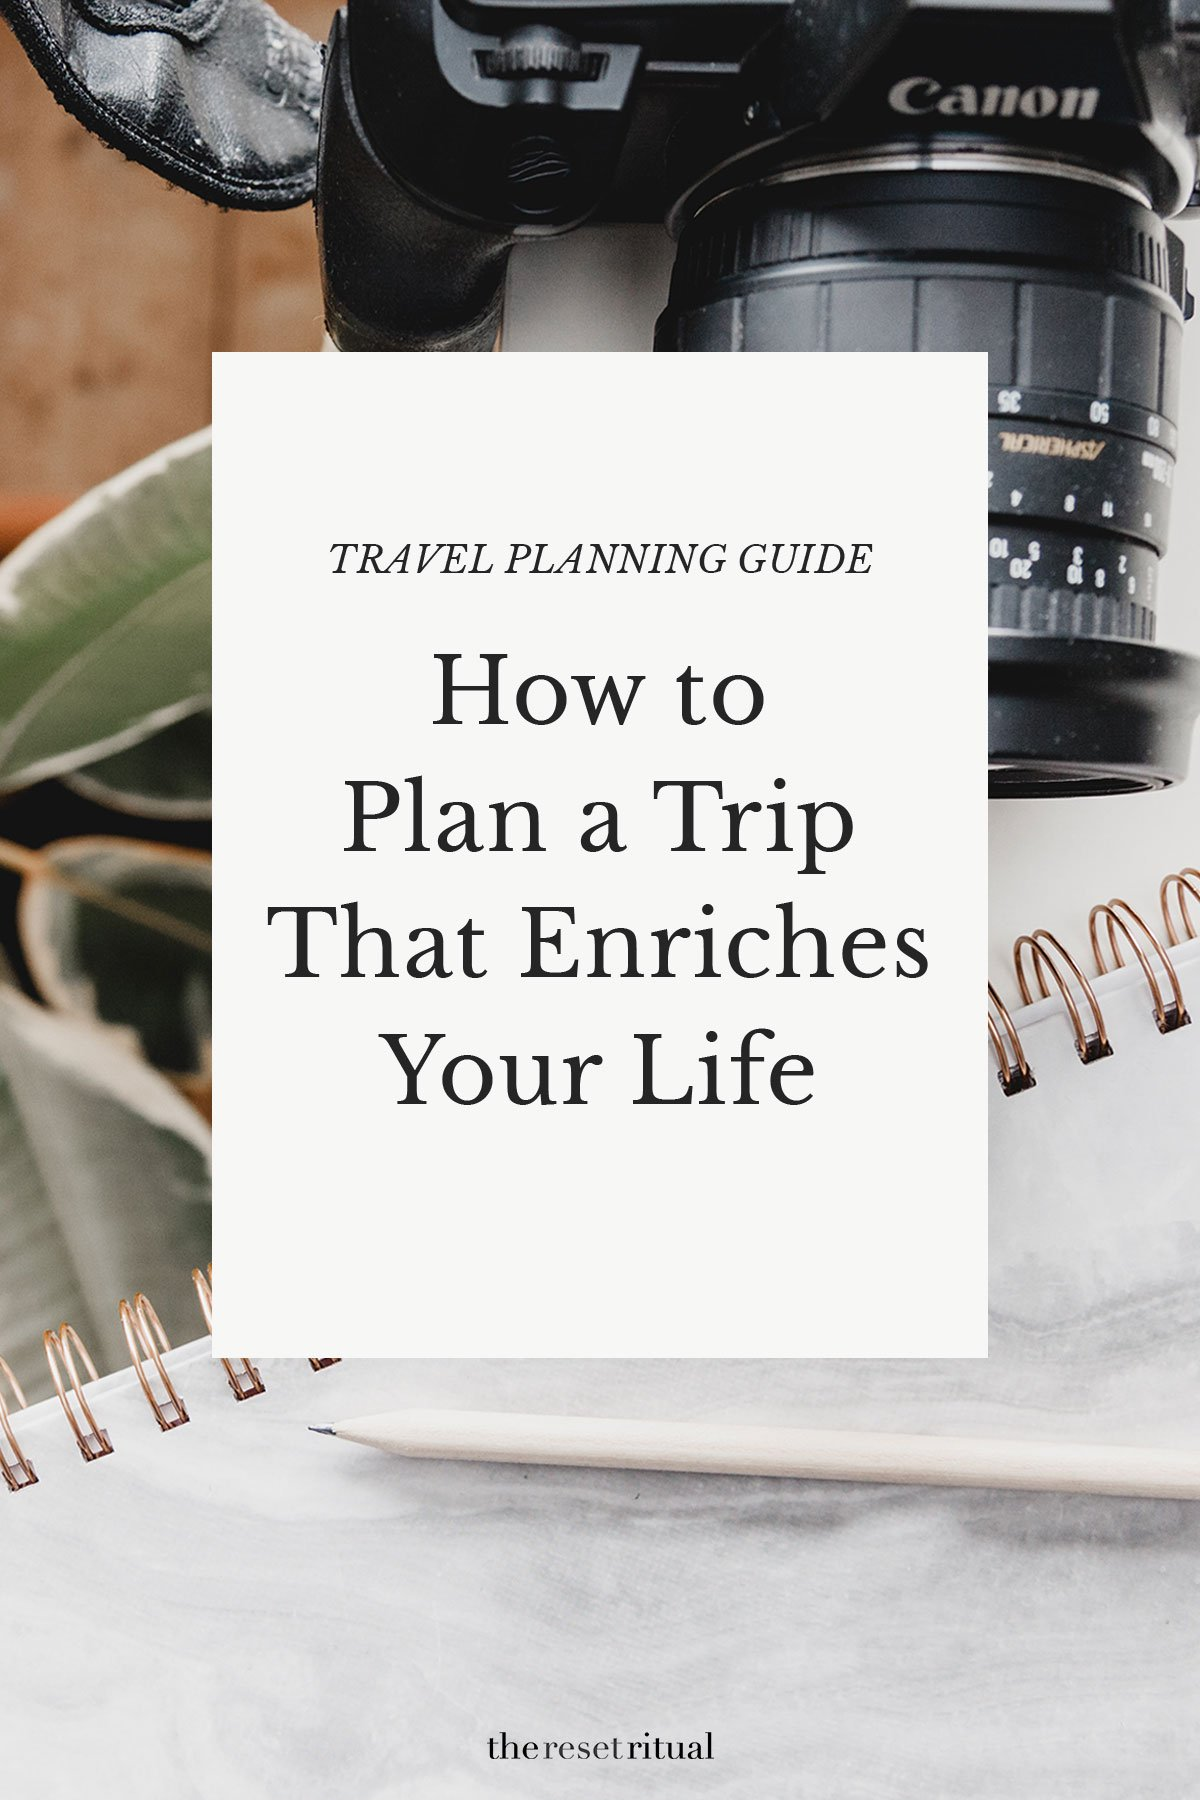 Learn how to plan a trip that enriches your life. This step-by-step travel planning guide will give you trip planning tips to shift your travel itinerary from rushed to rejuvenating. #travelplanning #traveltips #tripitinerary